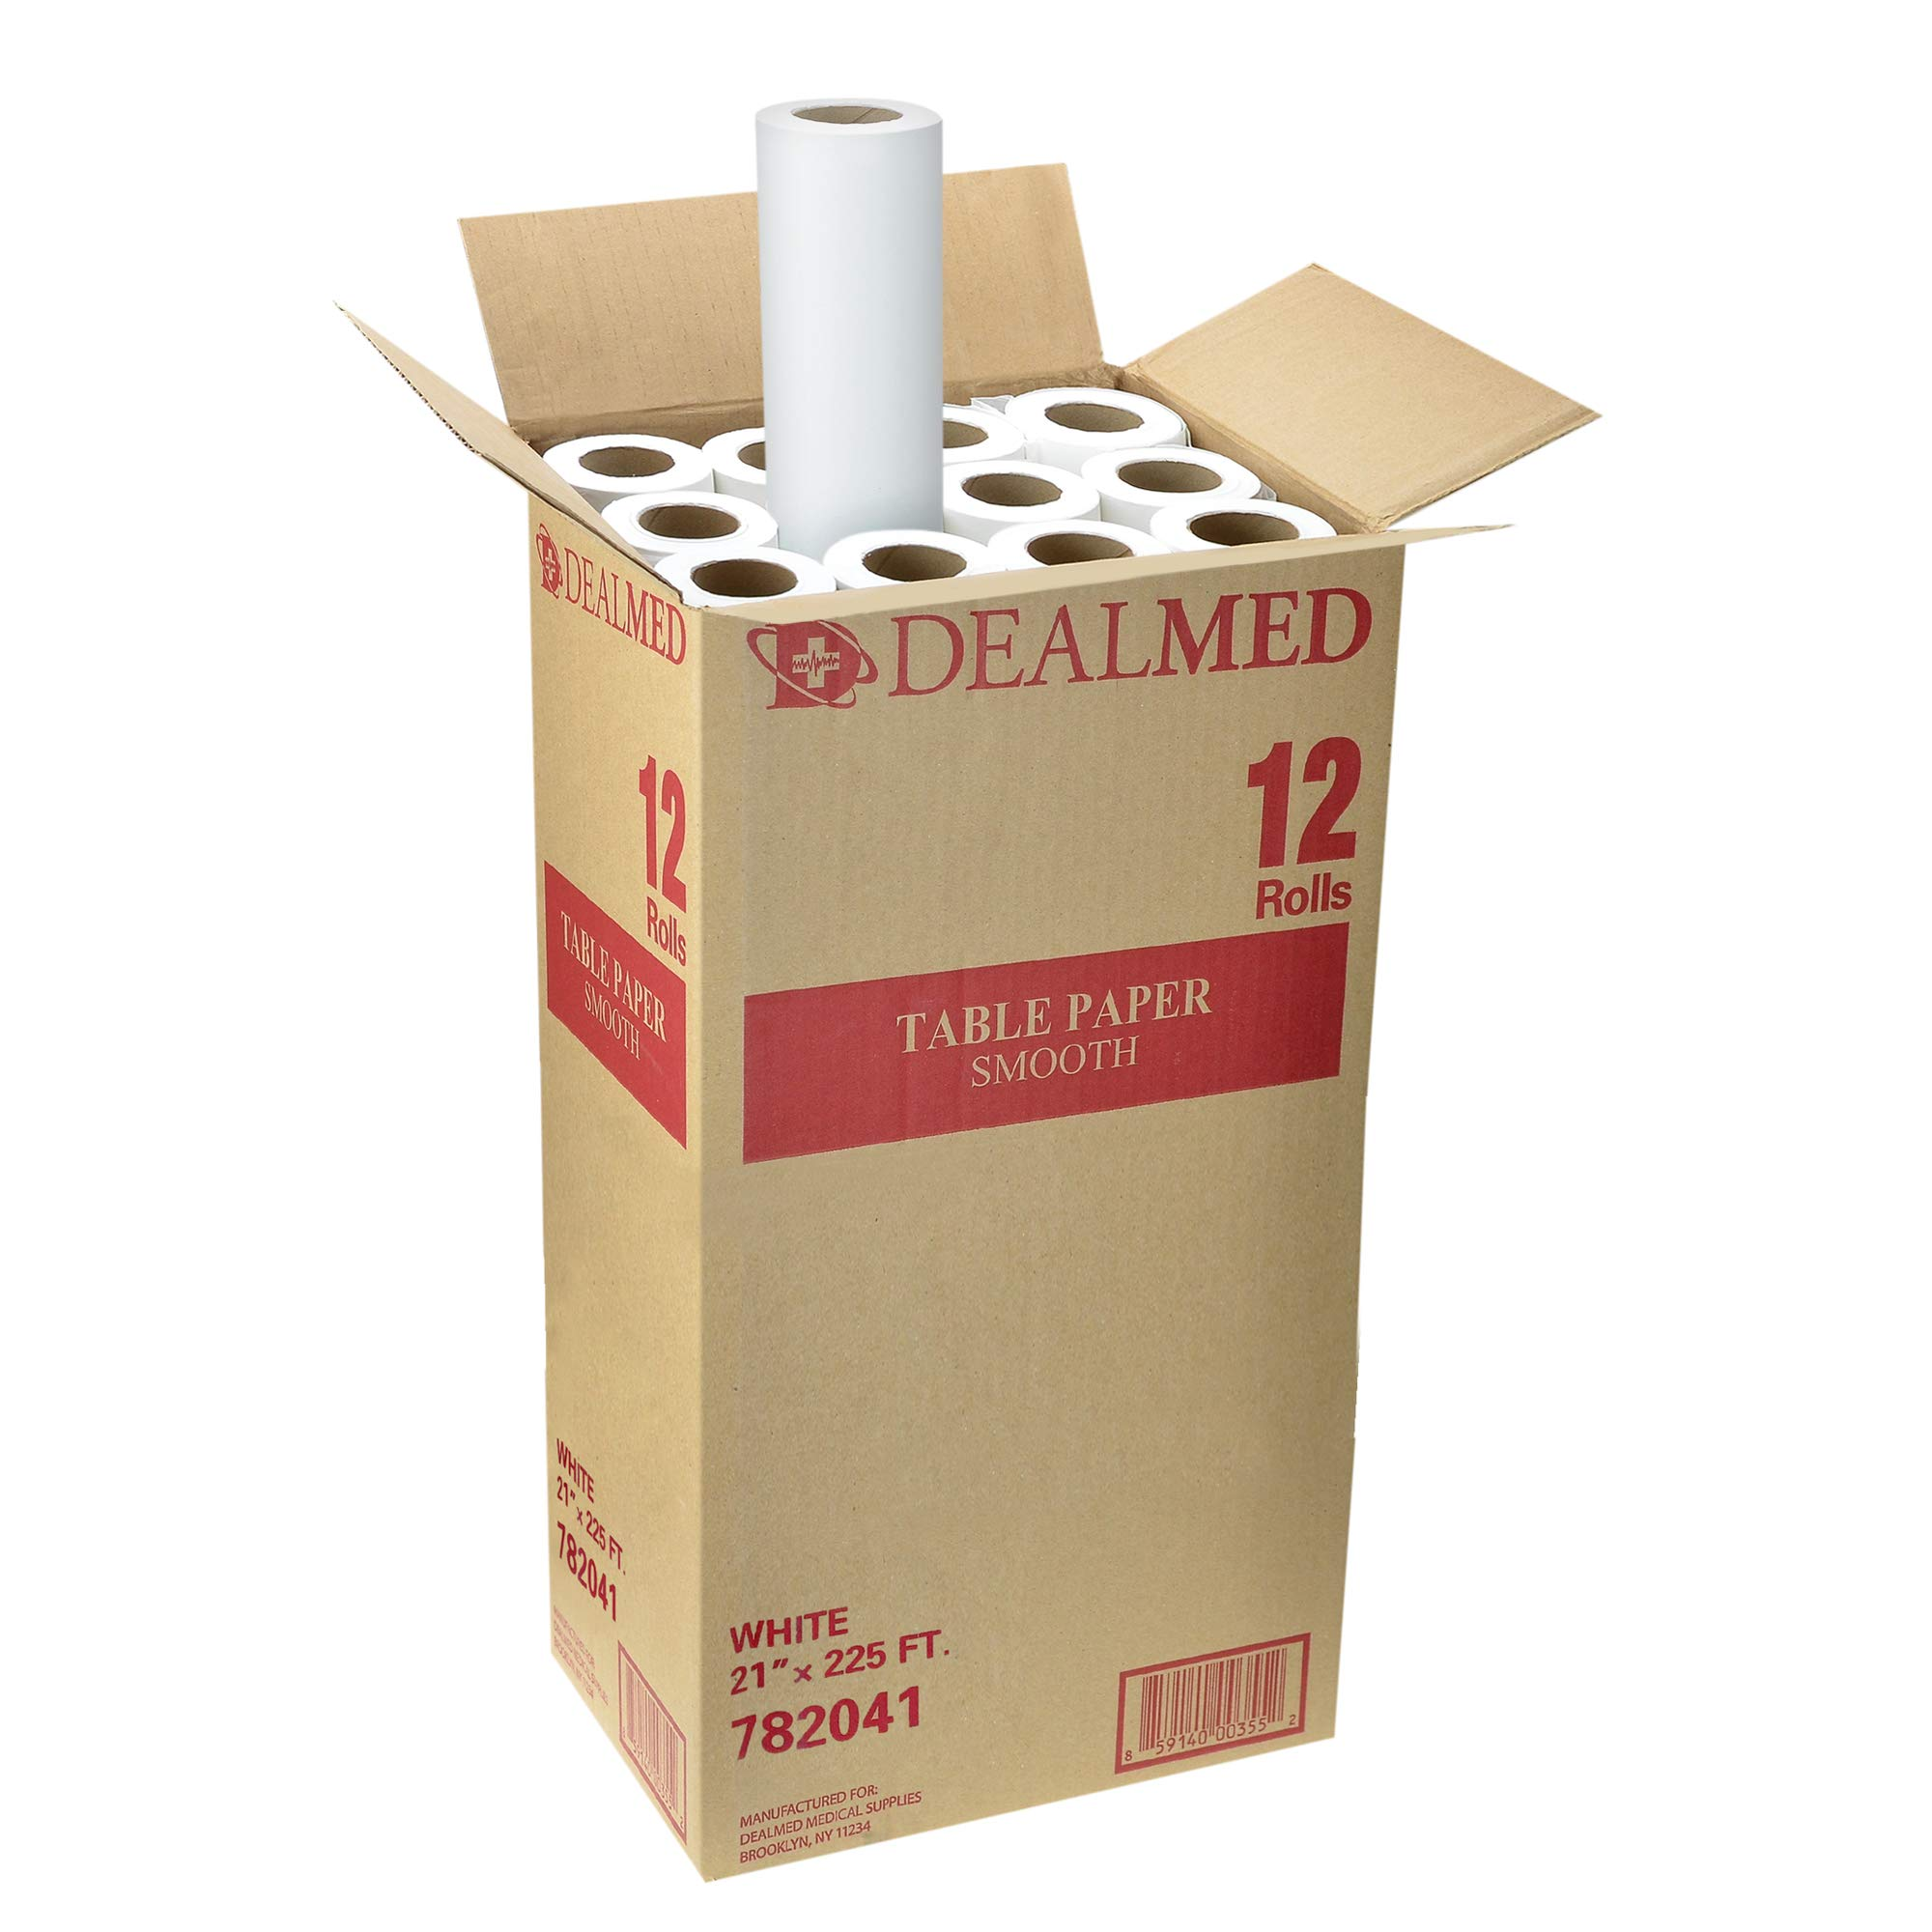 Dealmed Smooth Table Paper for Pattern-Making, Drafting, and Tracing, 21'' x 225 ft, White, 12 Rolls by Dealmed